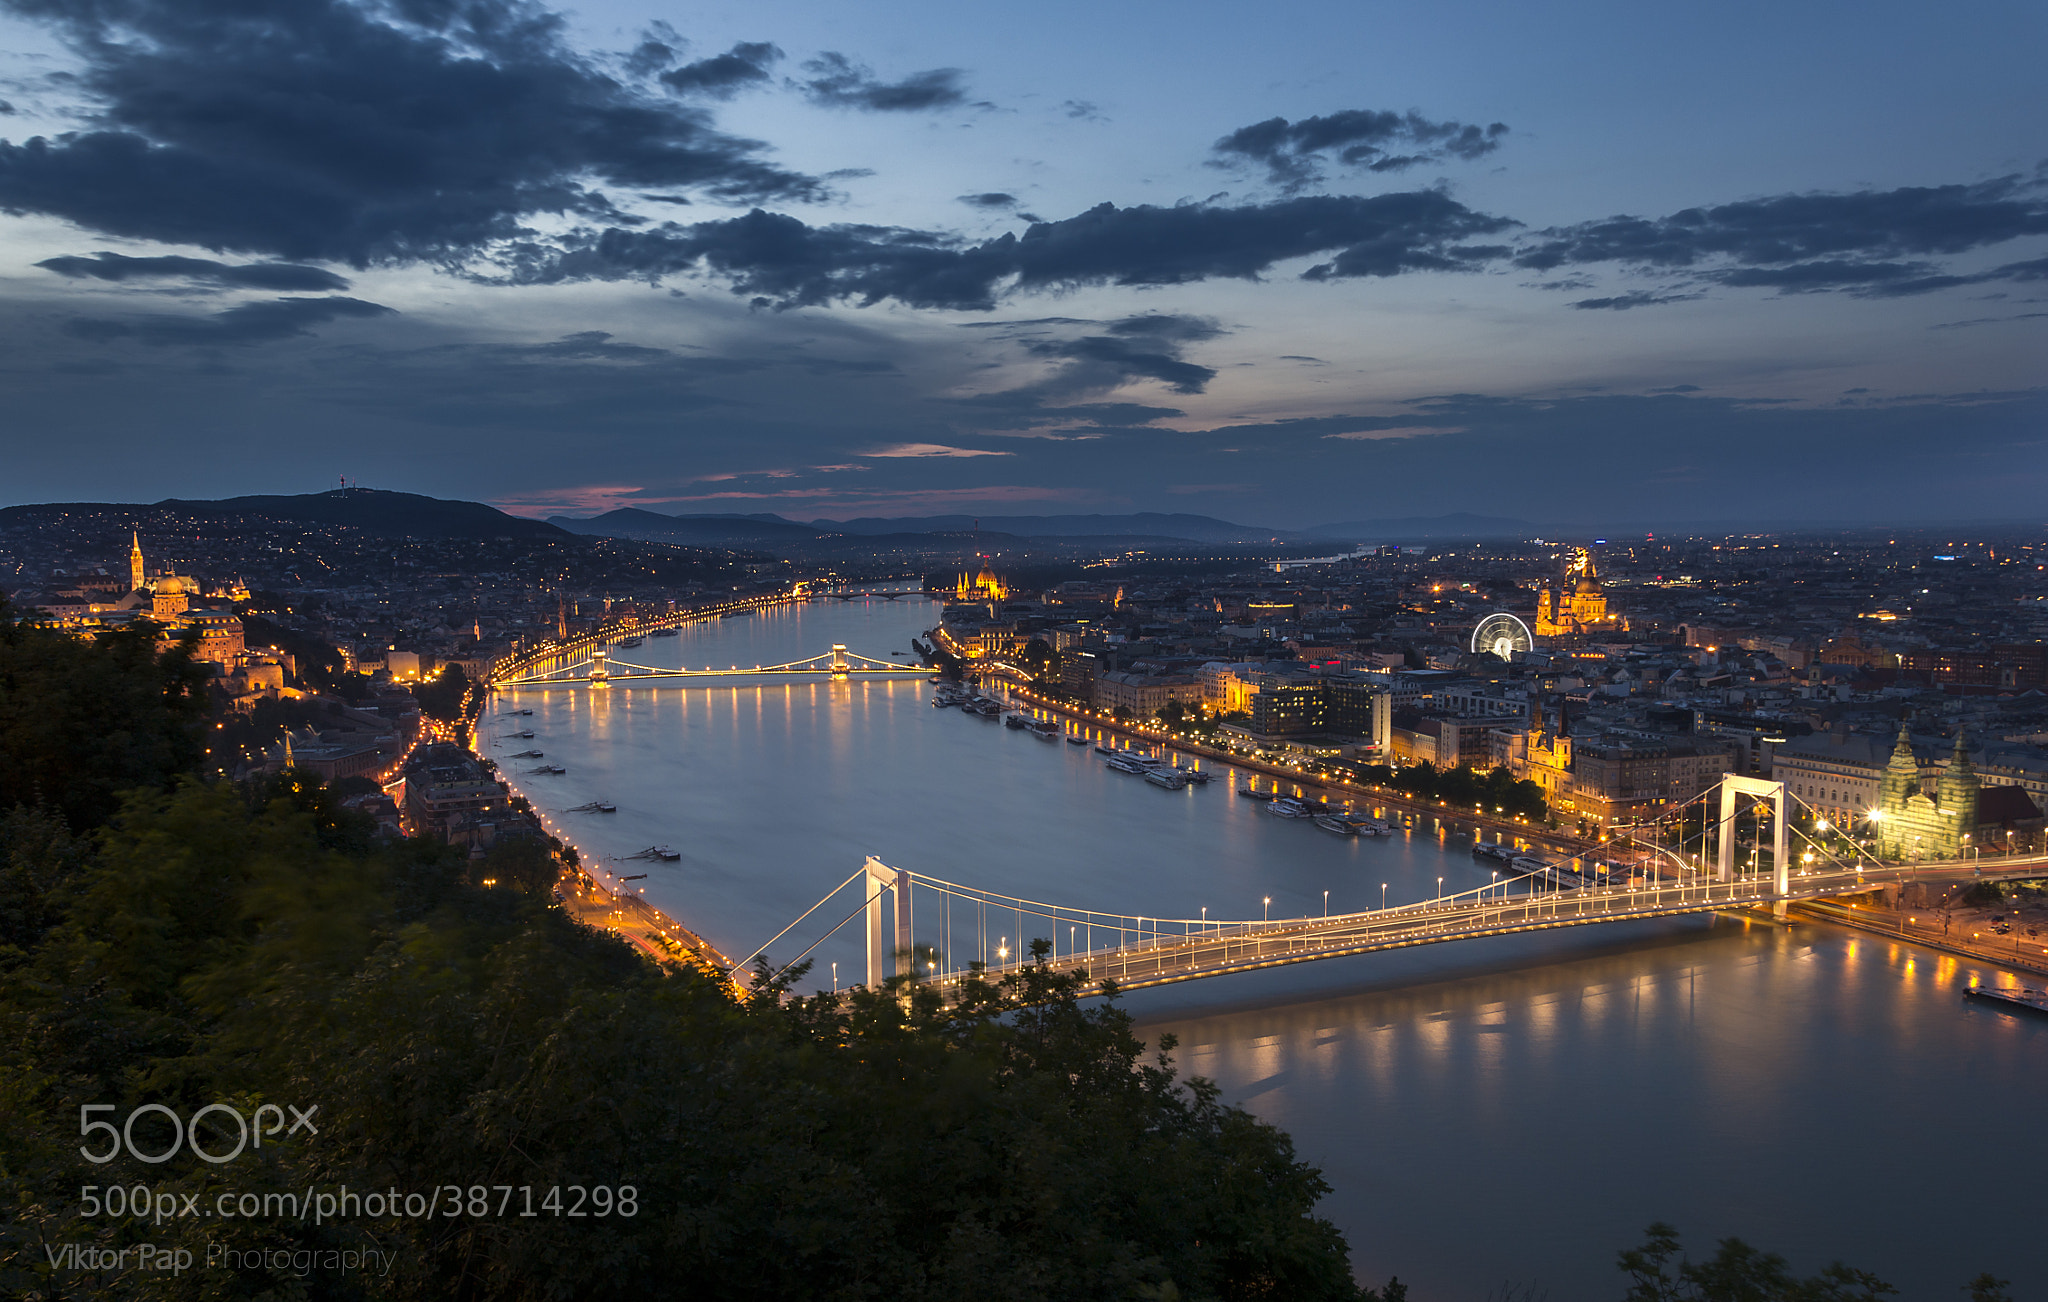 Photograph Budapest by Viktor Pap on 500px